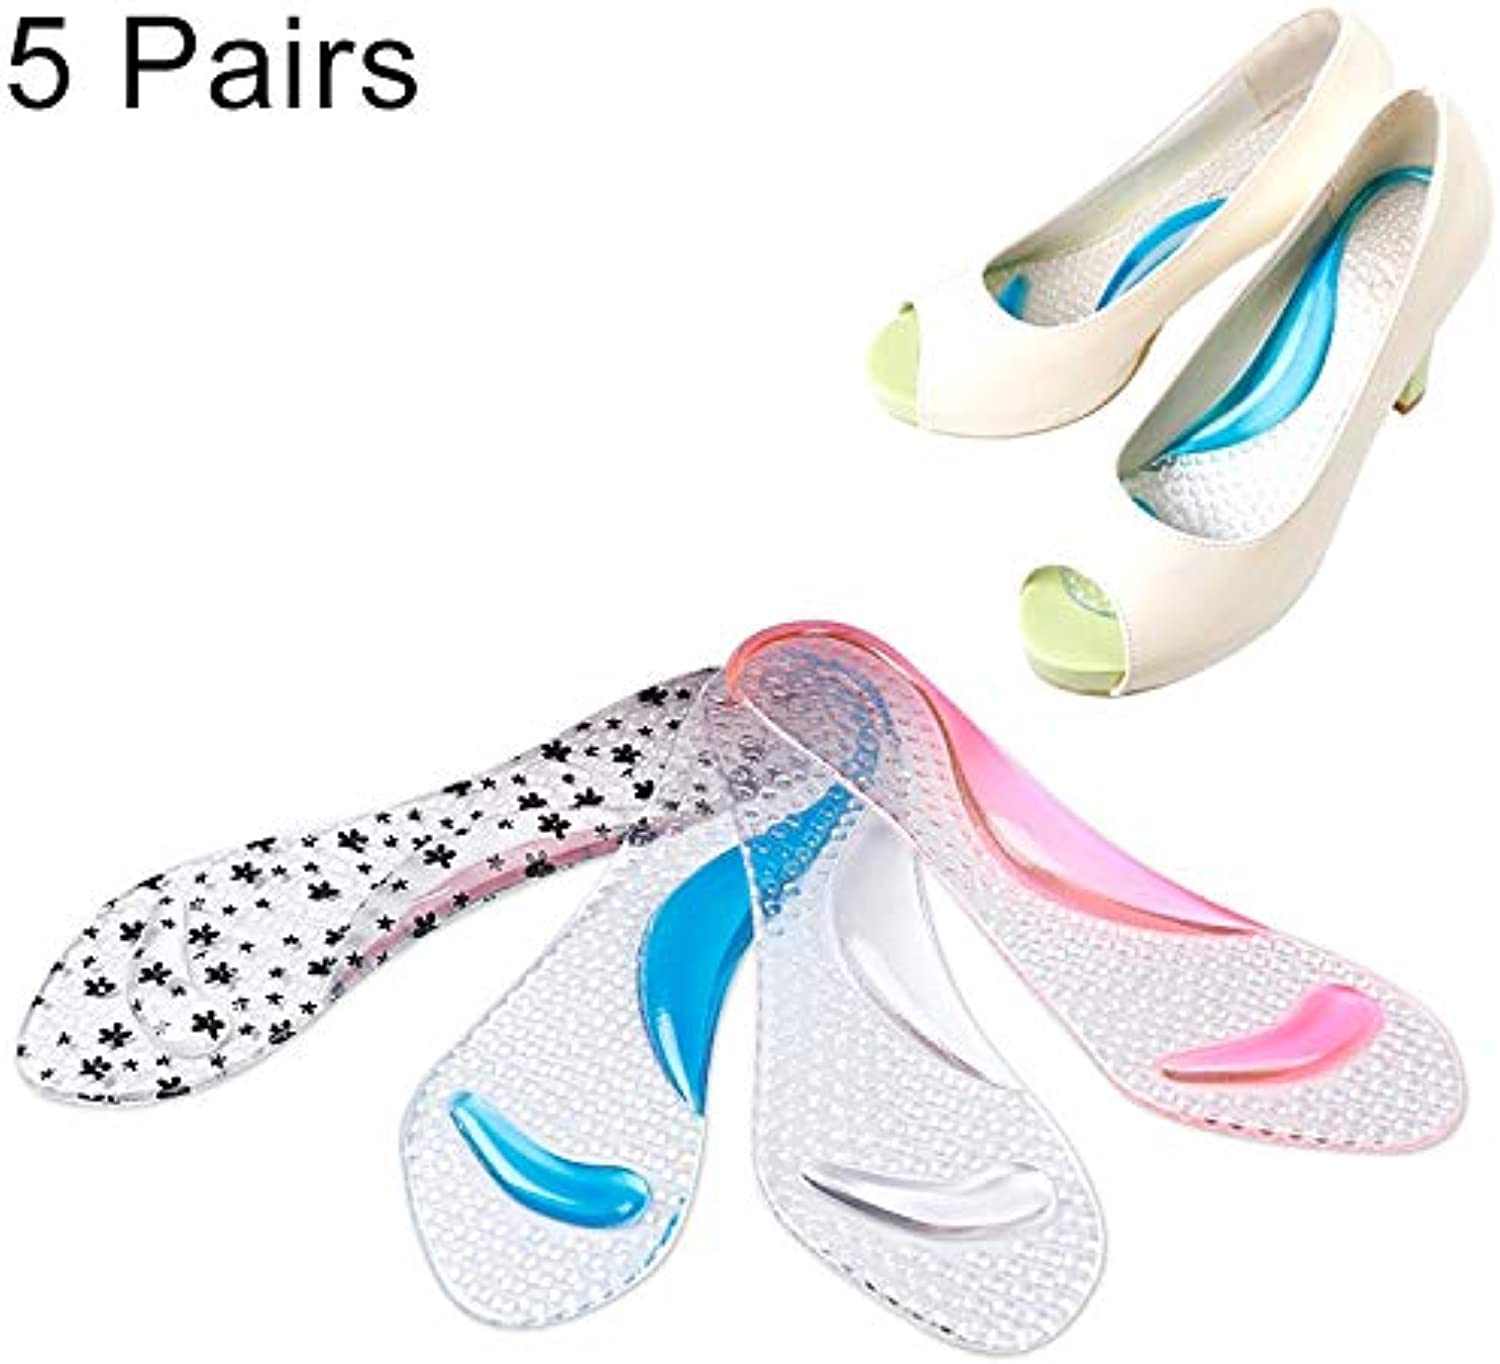 Anstorematealliance Outdoor&Sports shoes 5 Pair Women Silicone Gel Massage Arch Support Insoles Orthotic Flatfoot Prevent Foot Cocoon High Heels shoes Pad,Random color Delivery